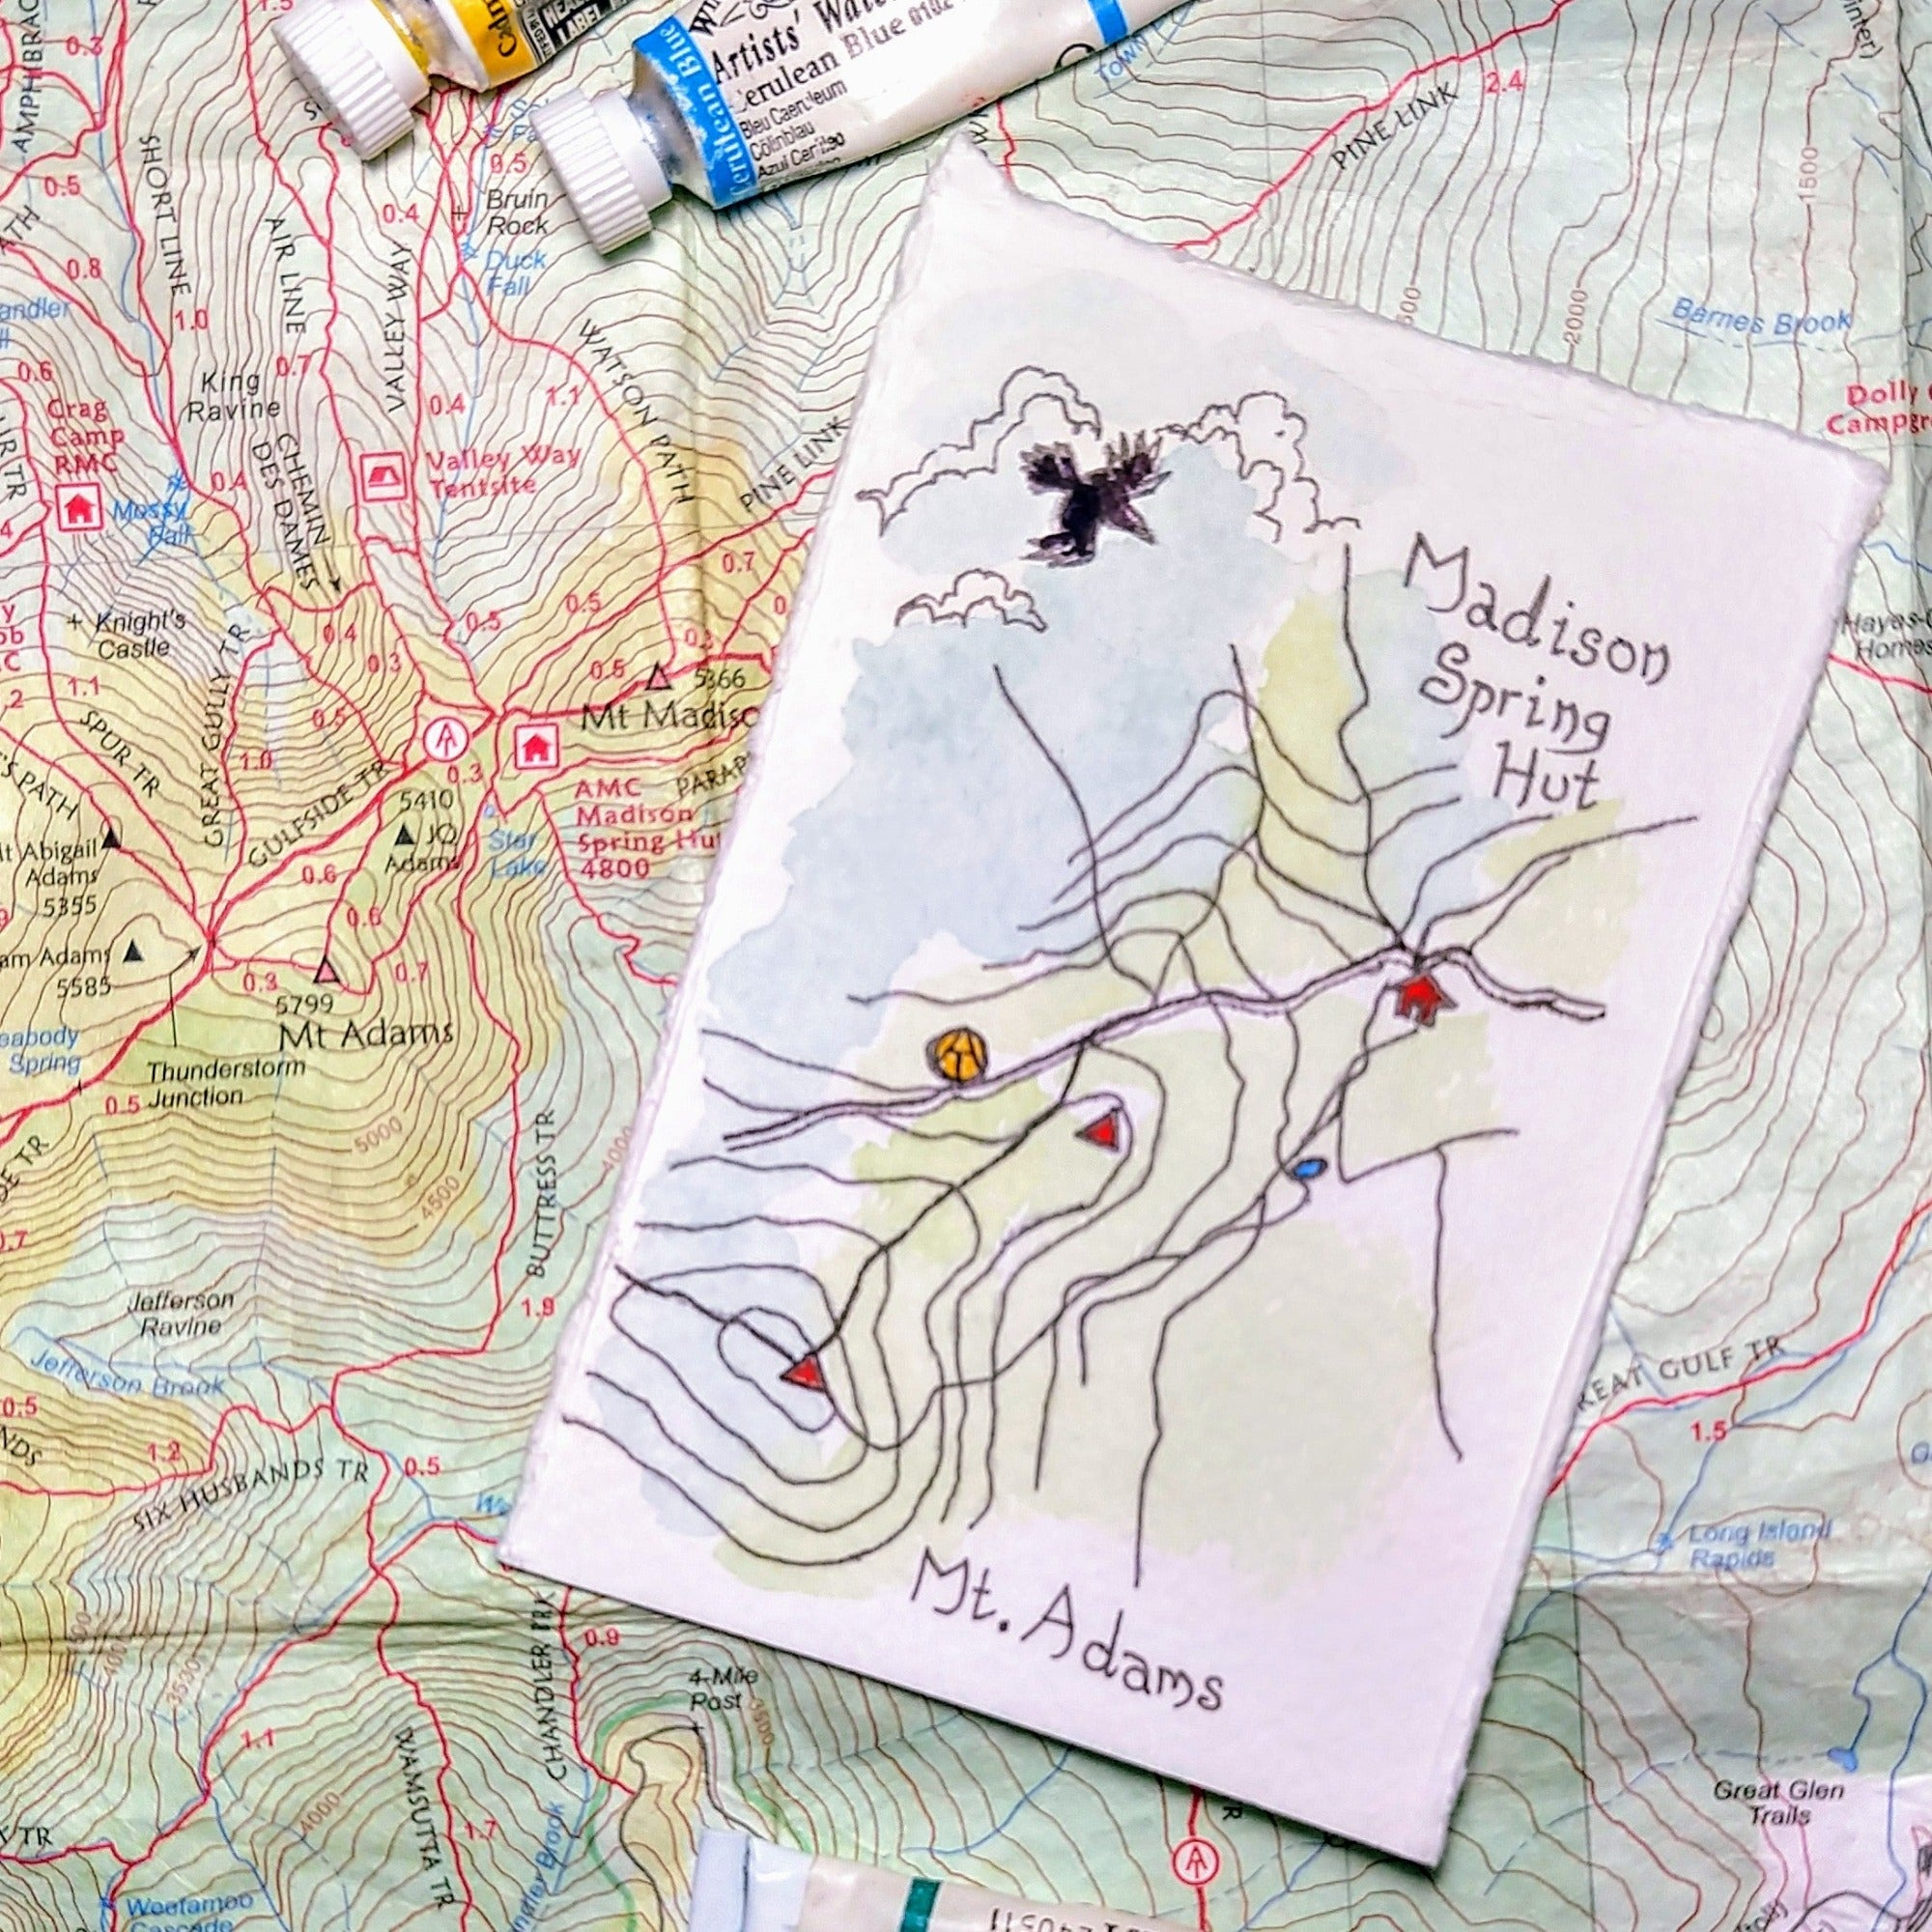 """Mount Adams and Madison Spring Hut,"" one of my miniature map paintings. These small watercolor paintings are tiny artworks of my favorite trails in the White Mountains of New Hampshire, home of some of the Northeast's best hiking!"